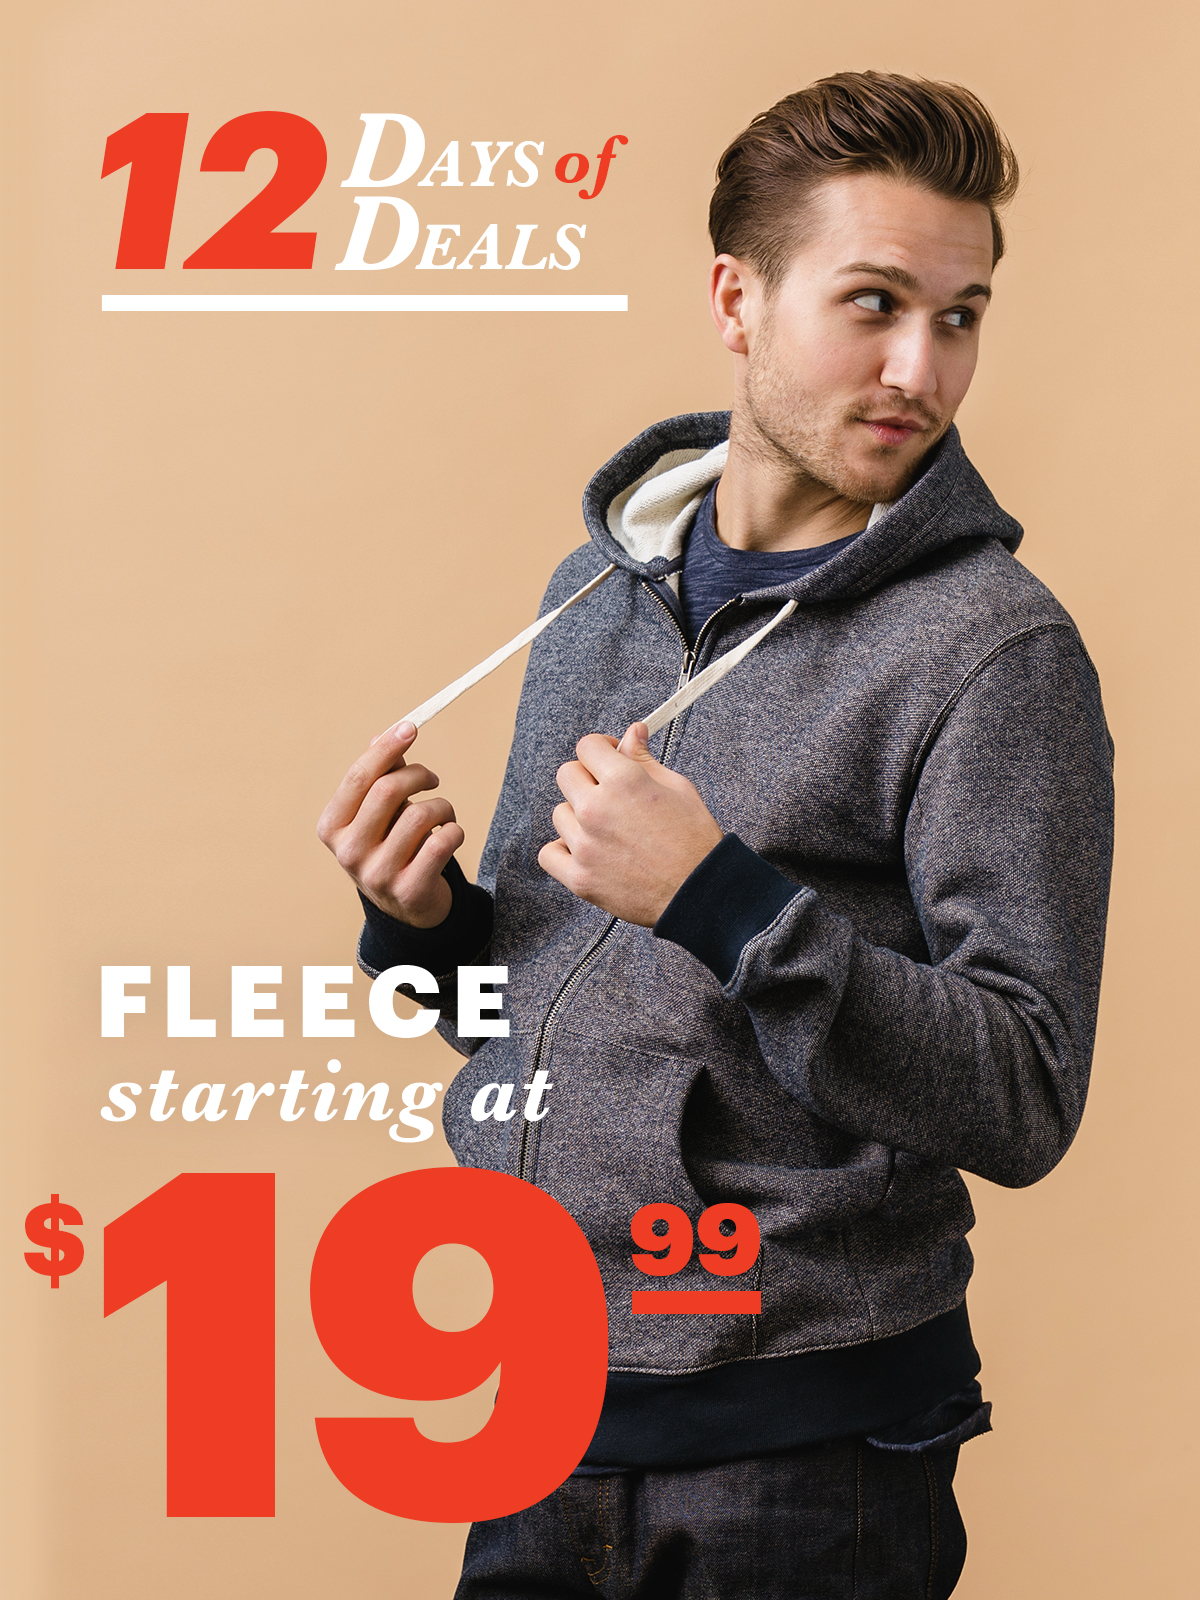 12 Days Of Deals: Day 6 Sweatshirts Starting at $19.99